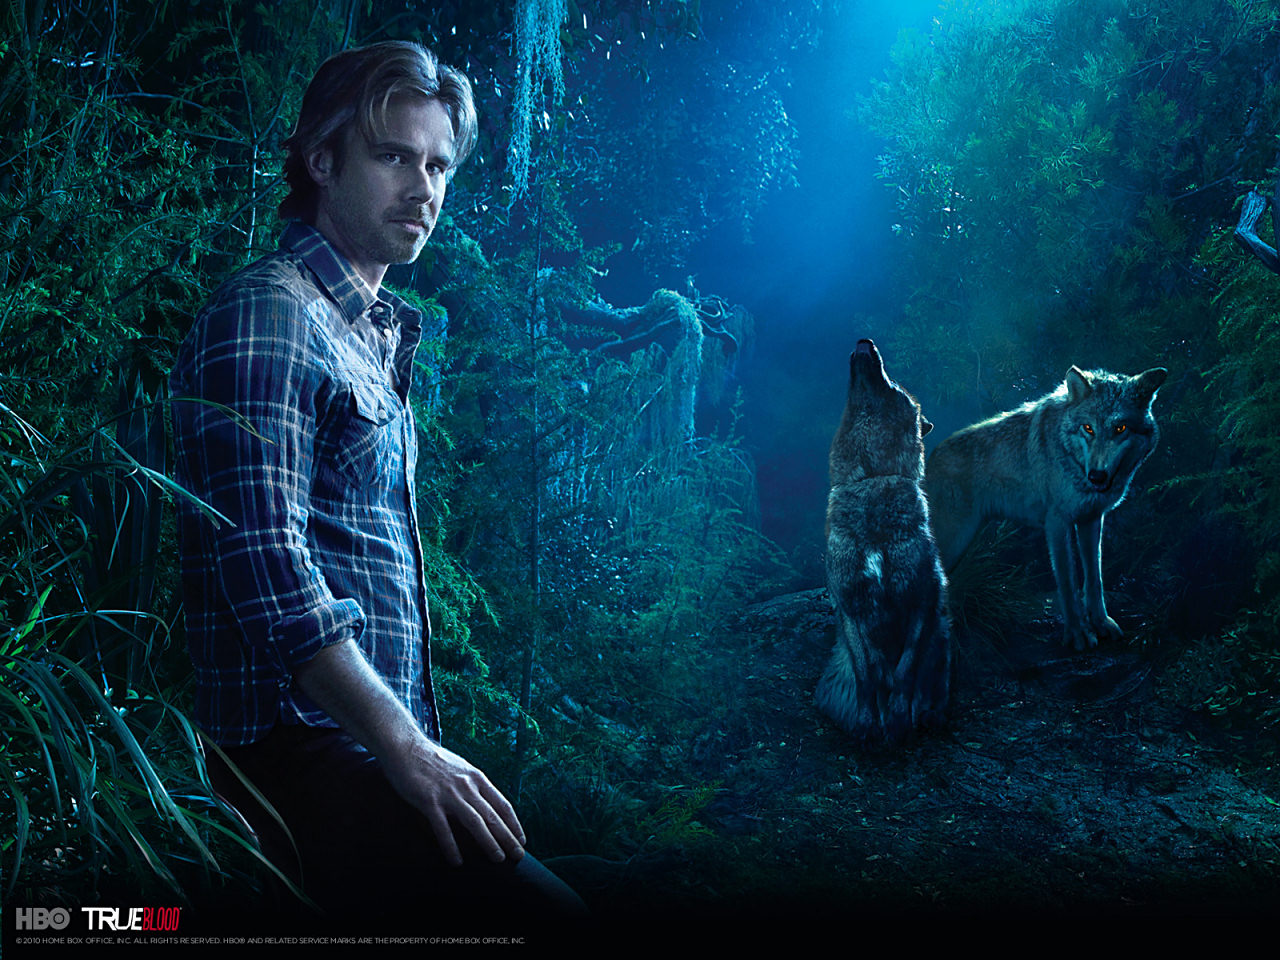 True Blood Wallpaper Hd: High Definition Photo And Wallpapers: True Blood Hd